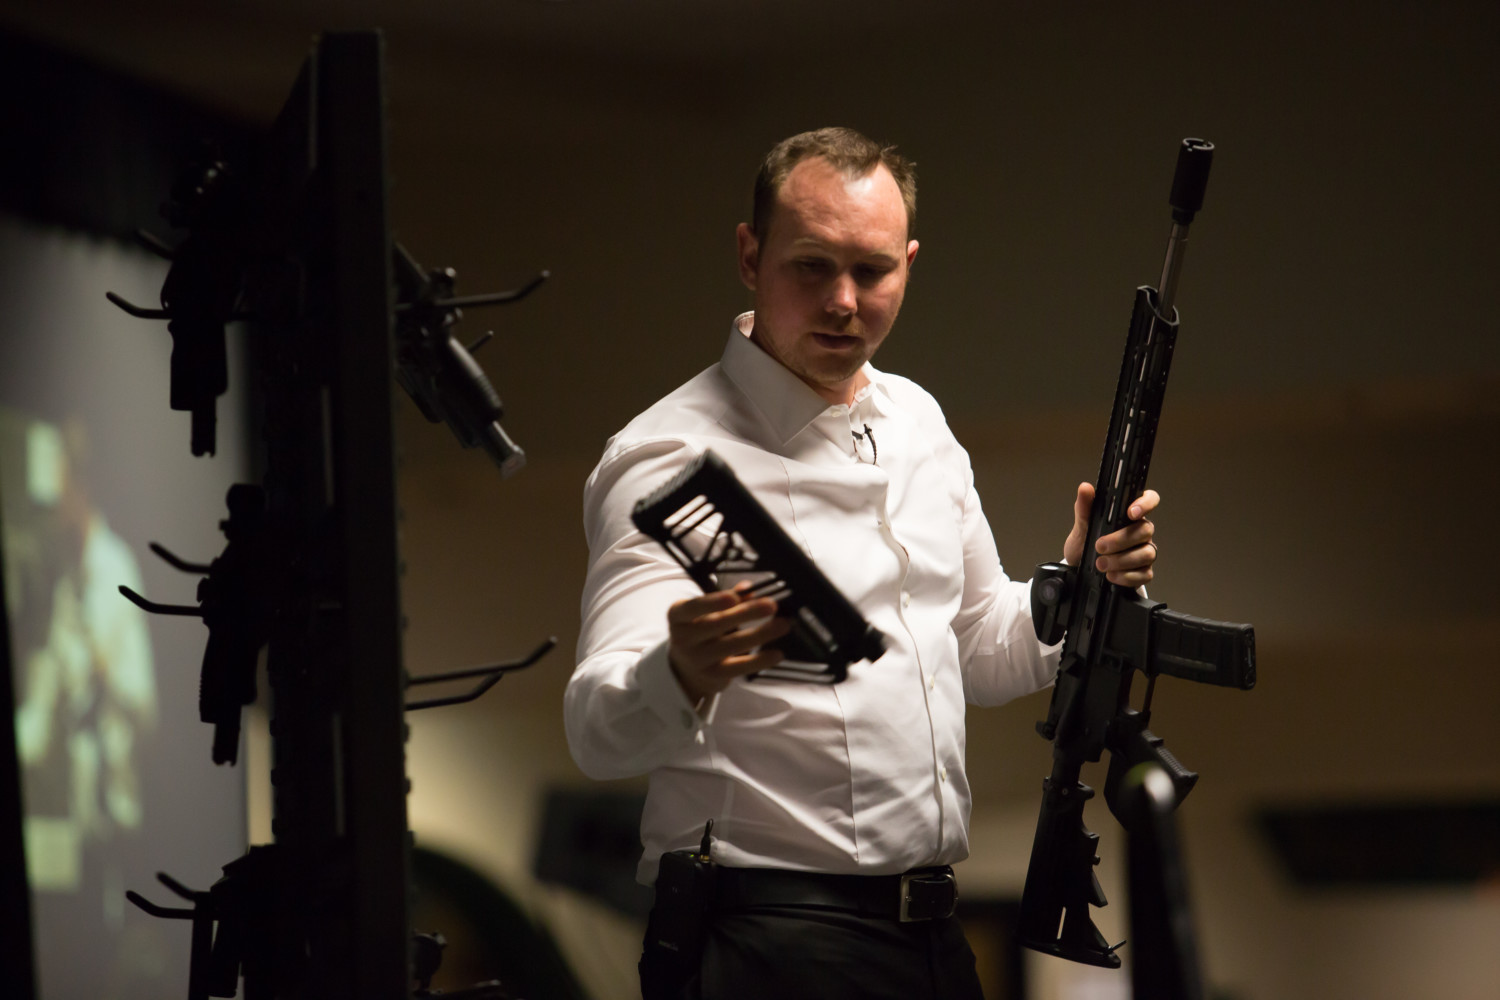 ARMS EDUCATION: Area gun owners attend convention to brush up on firearms and CA law